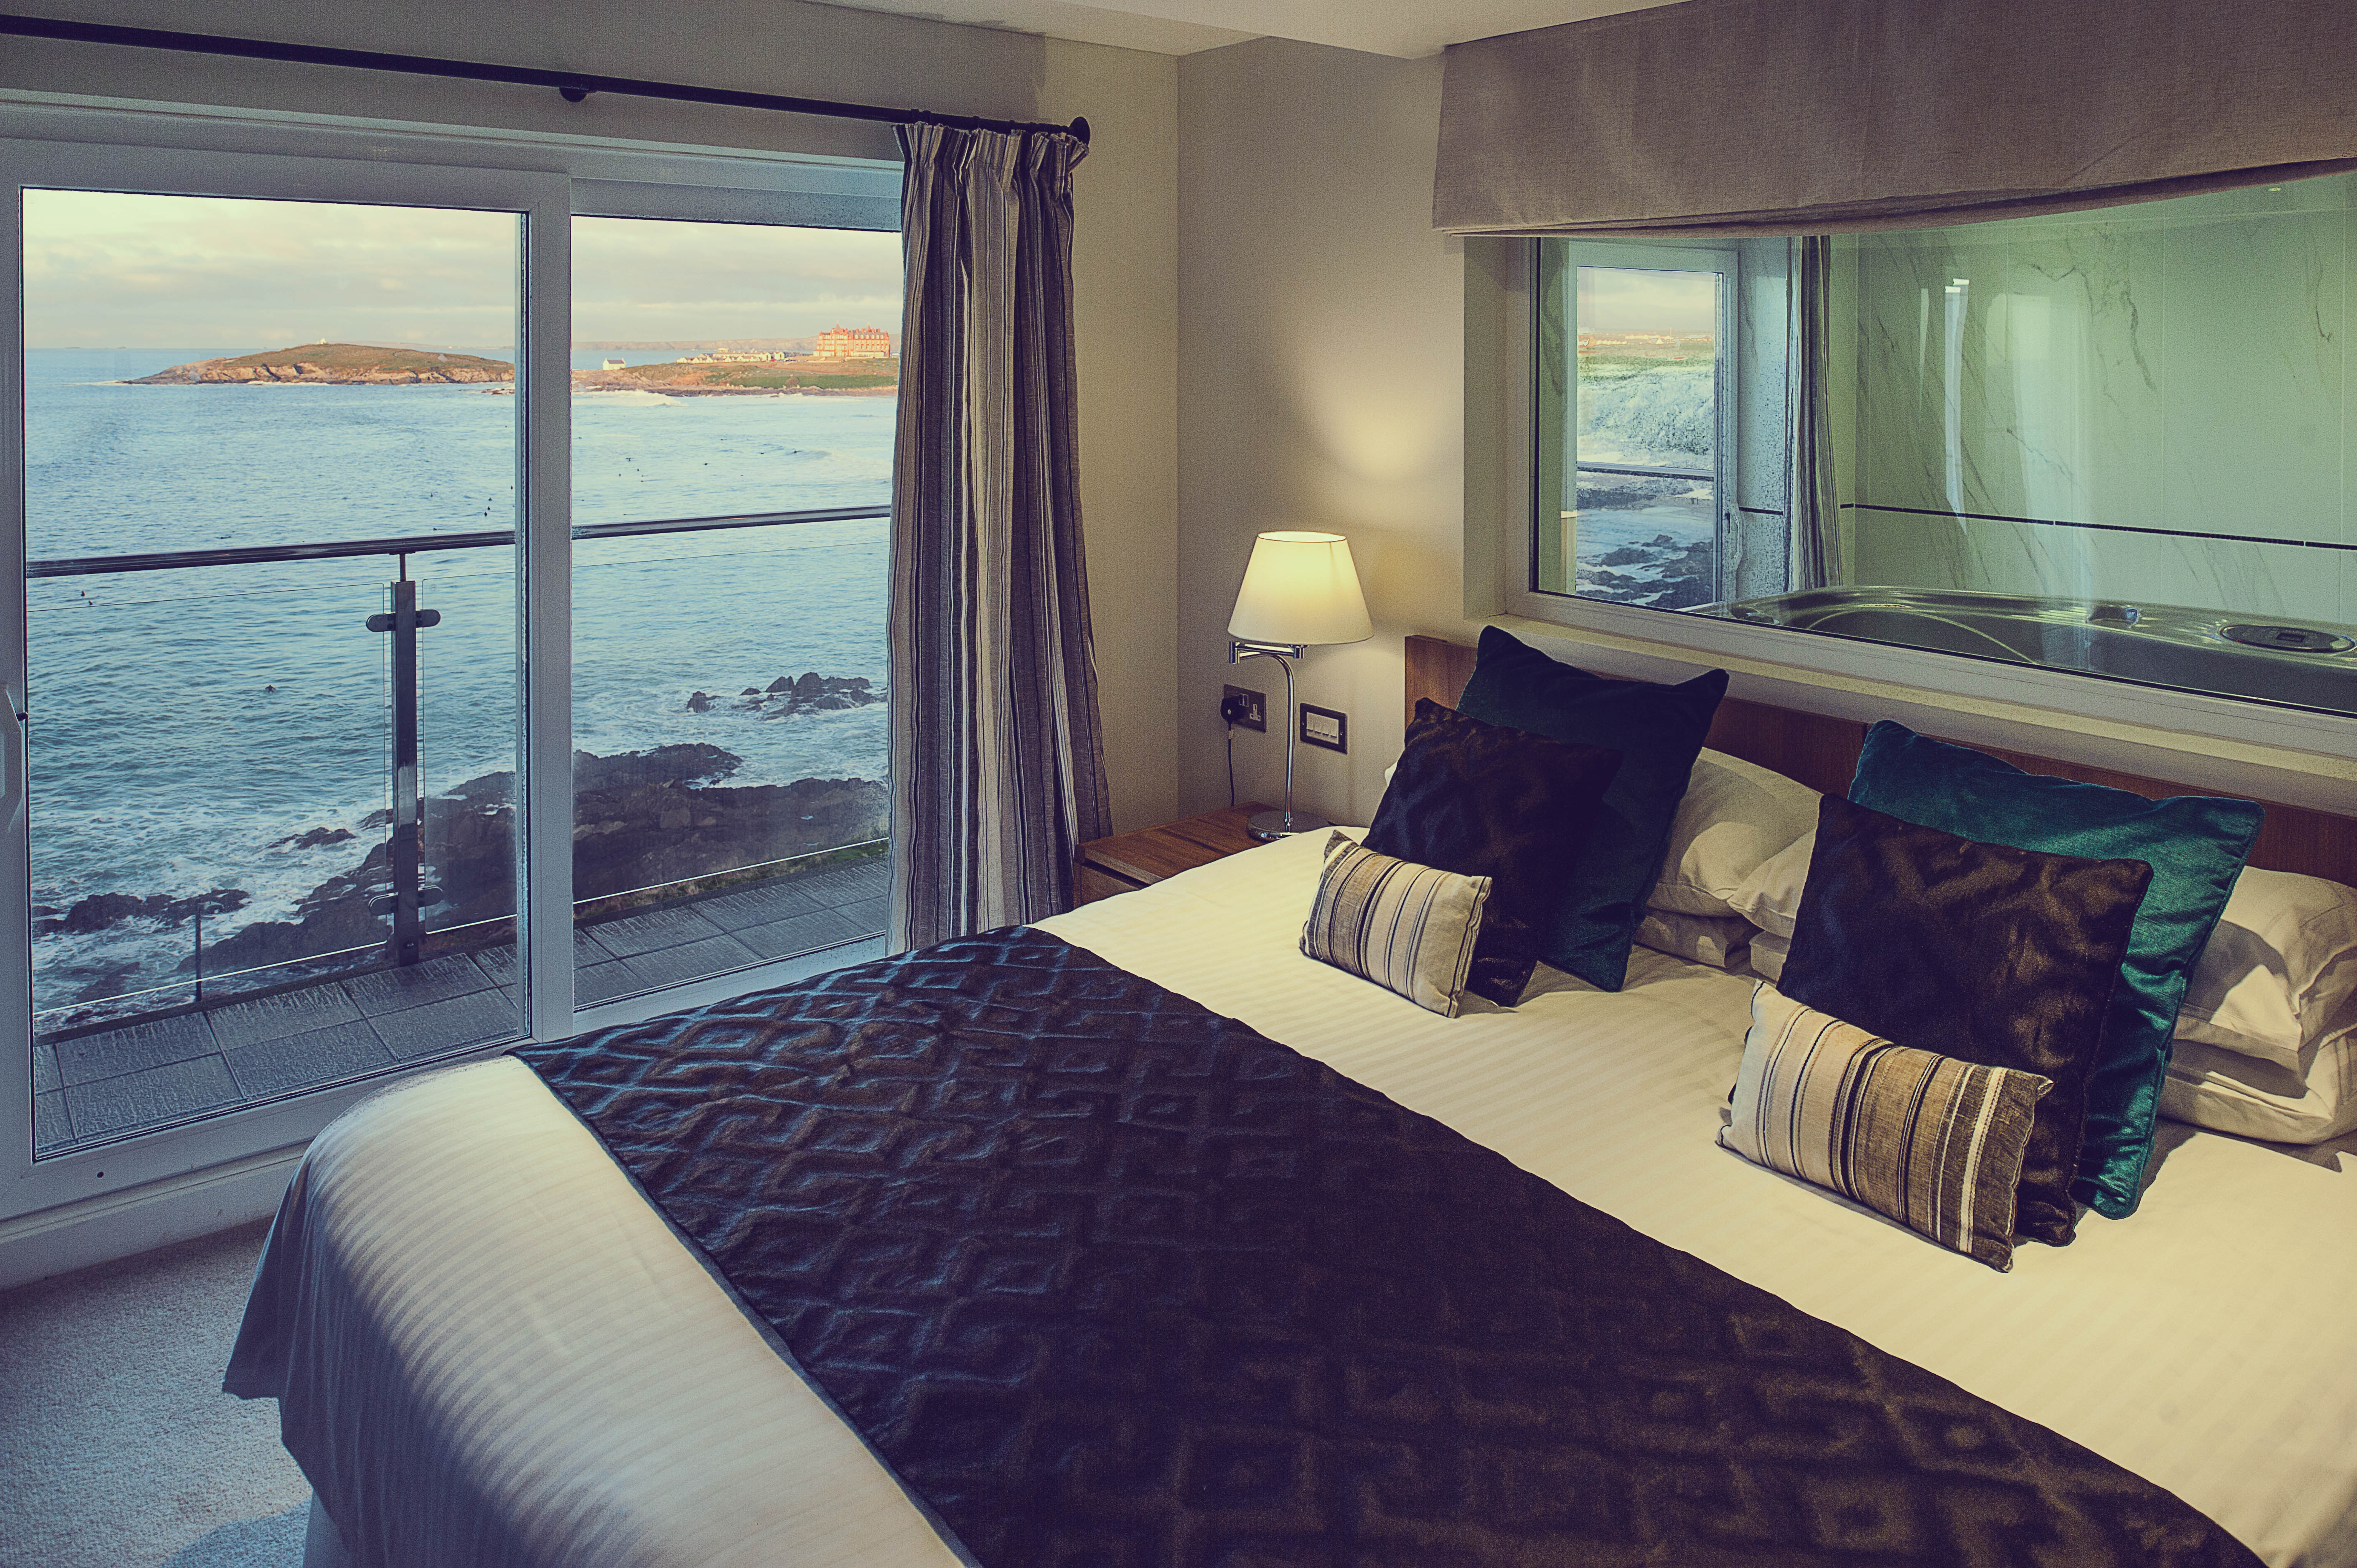 Fistral Beach Hotel Offers